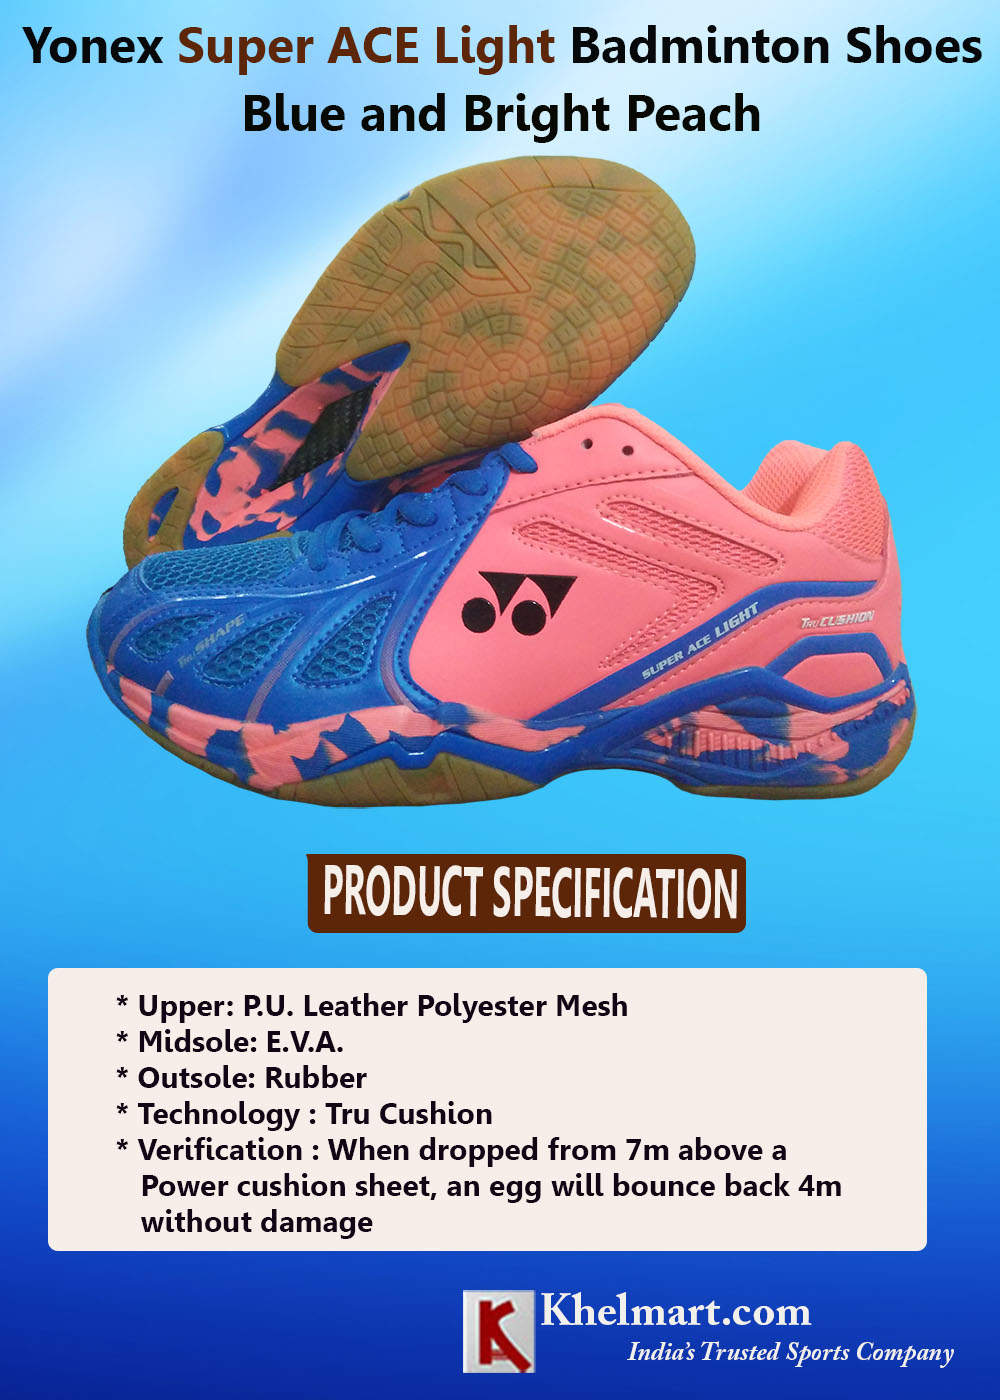 Yonex Super ACE Light Badminton Shoes Blue and Bright Peach